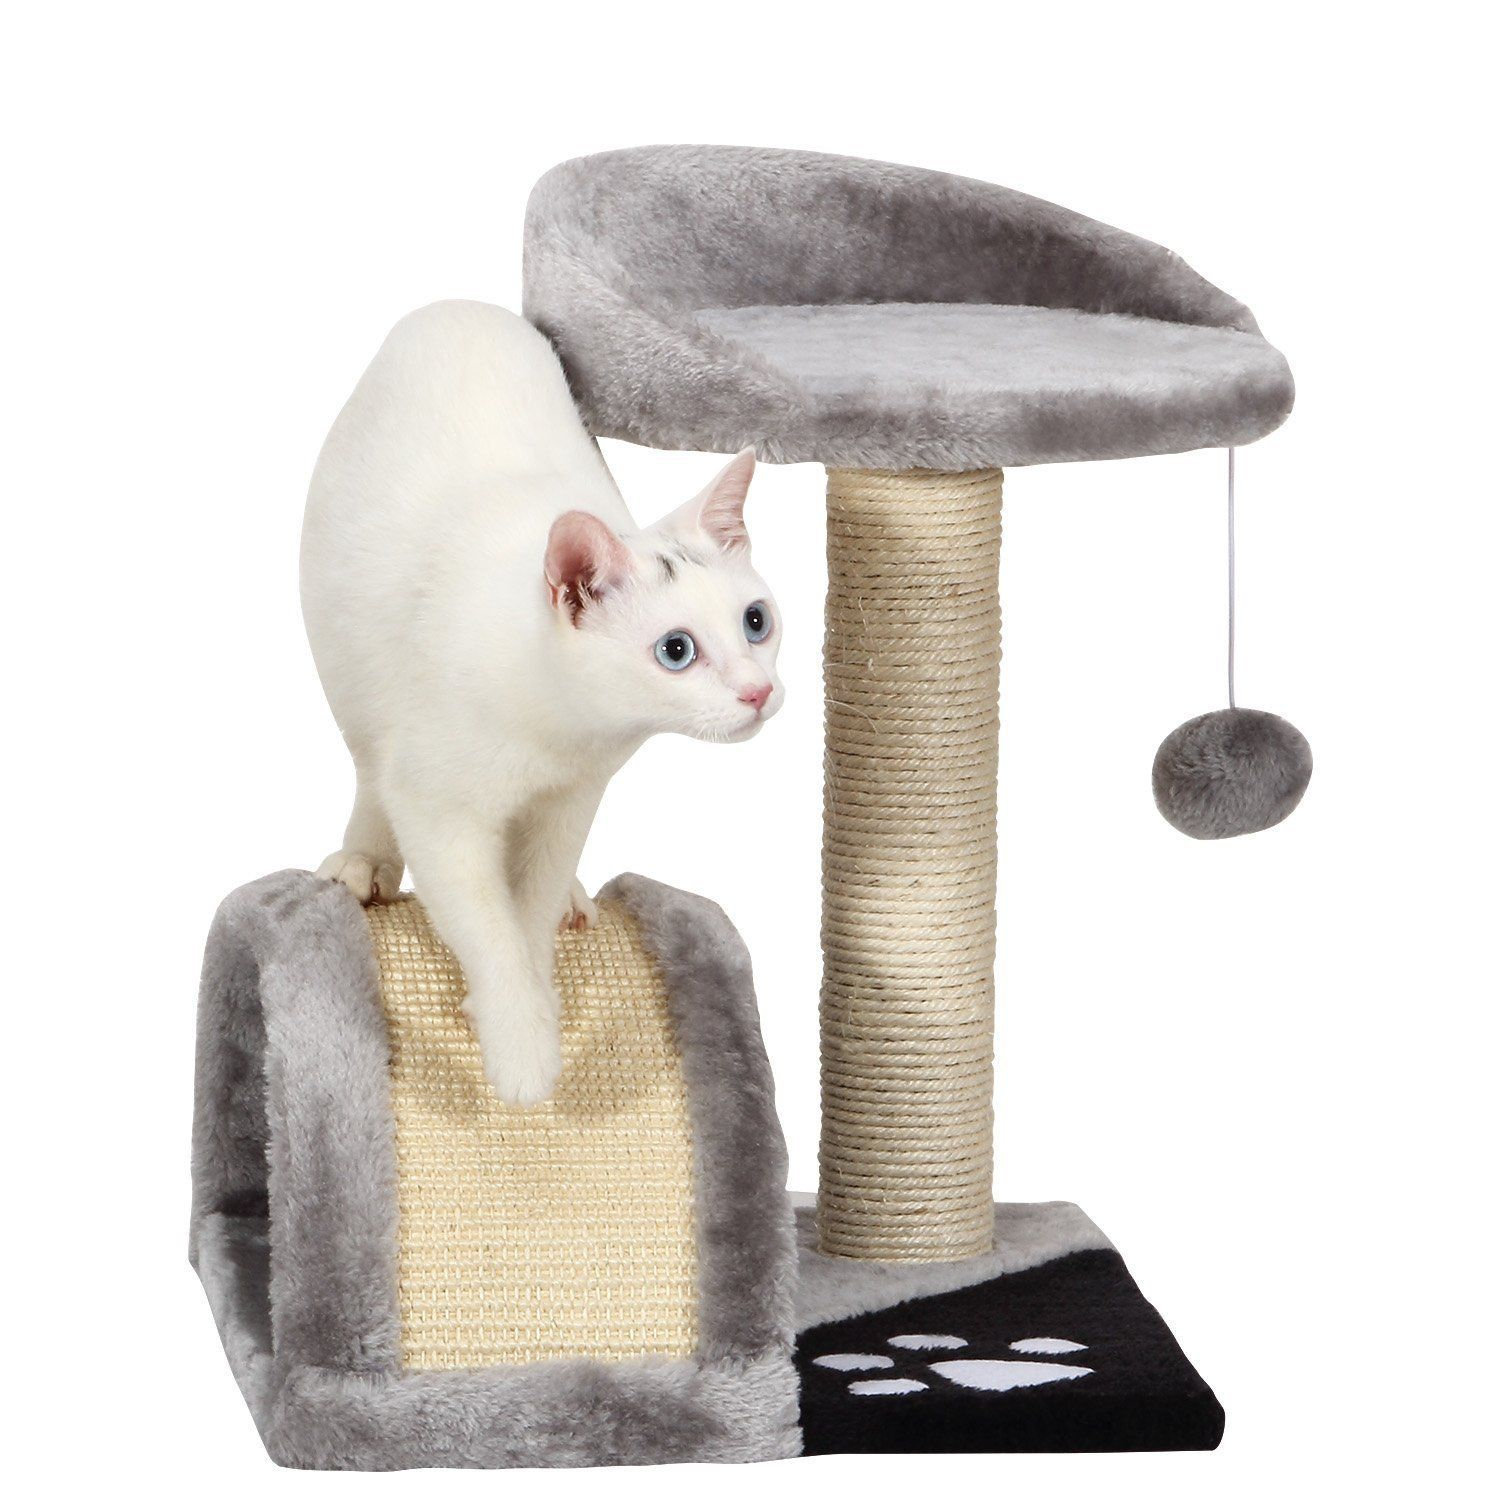 Ollieroo Small Cat Tree Sisal Scratching Post Furniture Playhouse Pet Bed Kitten Toy Cat Tower Condo For Kittens Mo Small Cat Tree Cat Tree House Kitten Toys